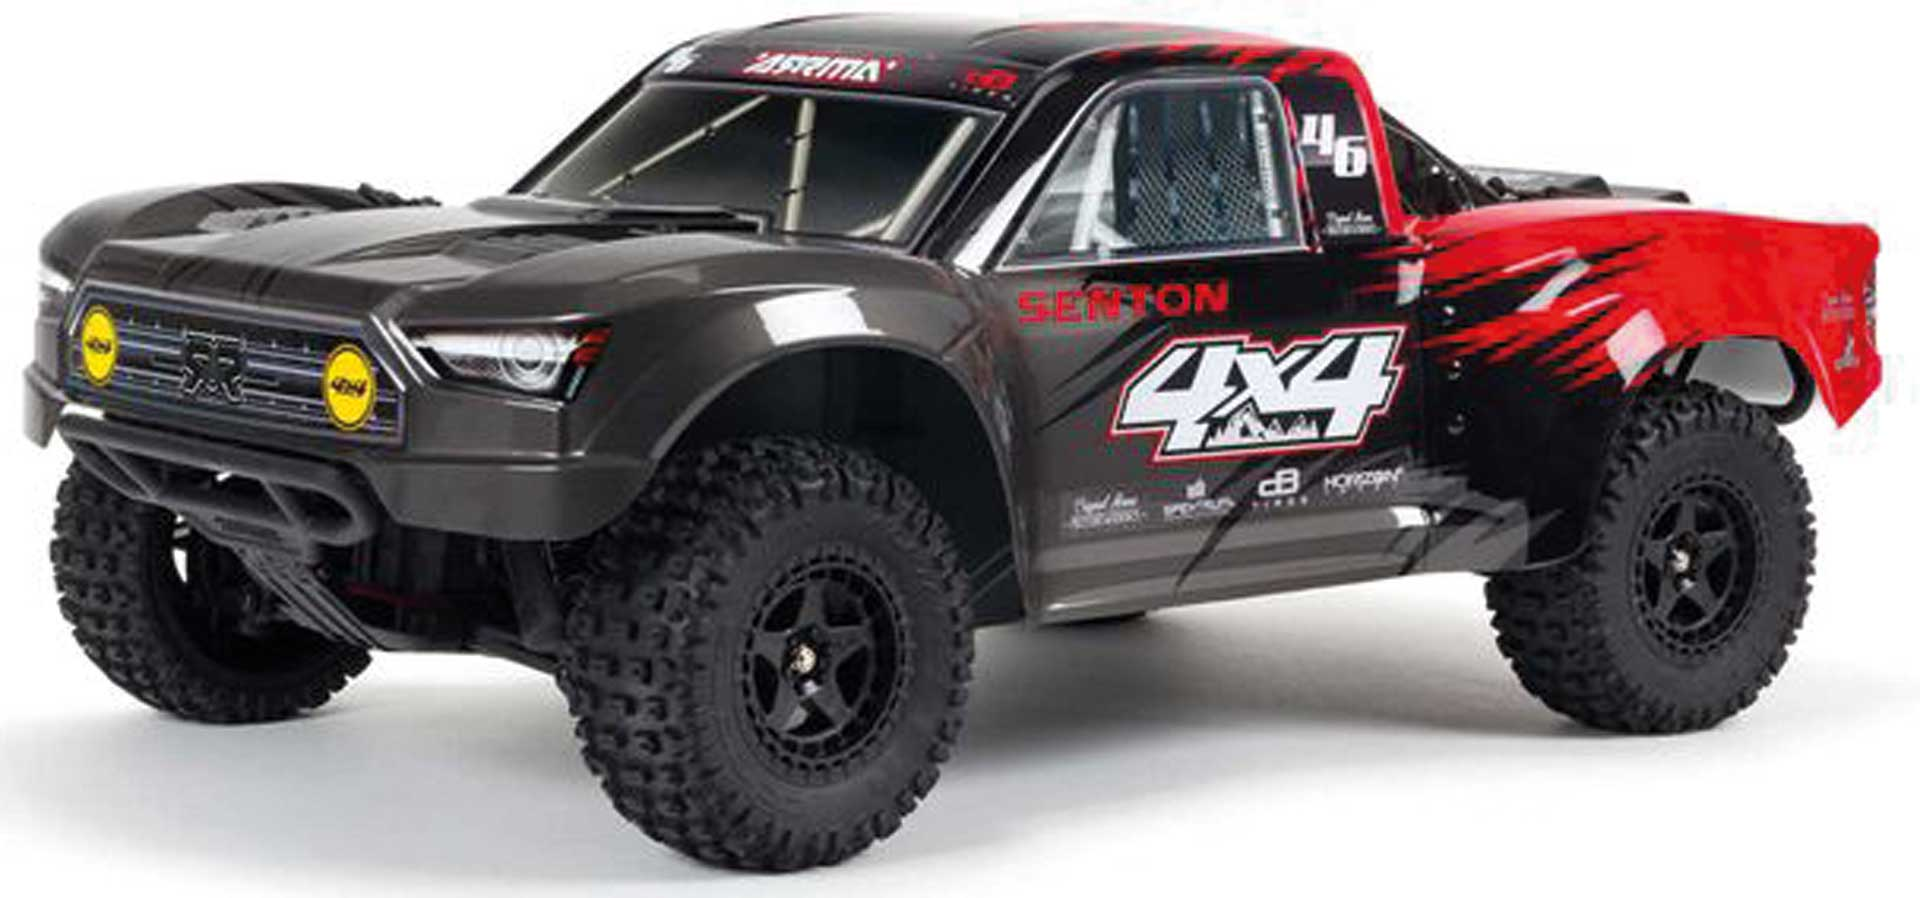 Arrma SENTON 4X4 MEGA Brushed 1/10th 4wd SC Color1